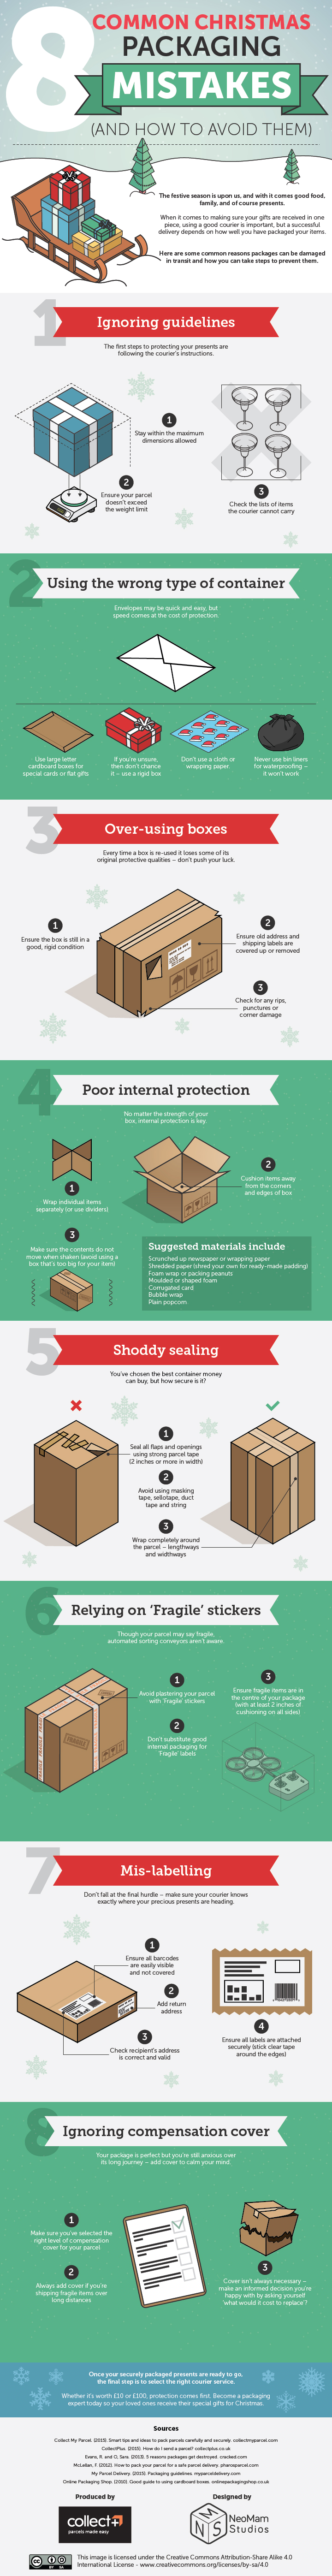 8 Common Packaging Mistakes